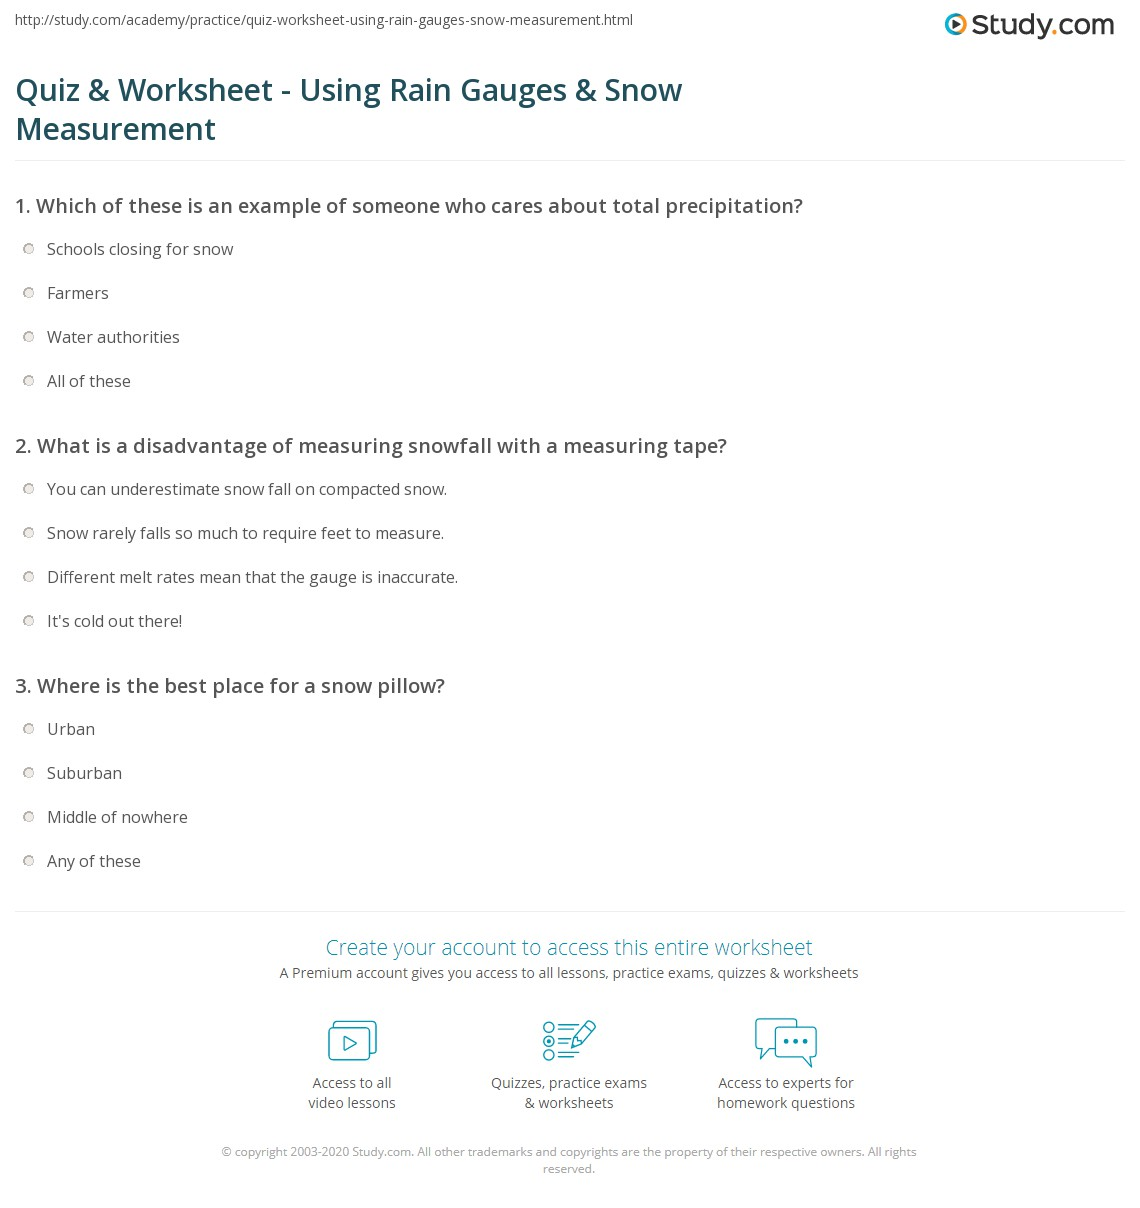 quiz worksheet using rain gauges snow measurement. Black Bedroom Furniture Sets. Home Design Ideas